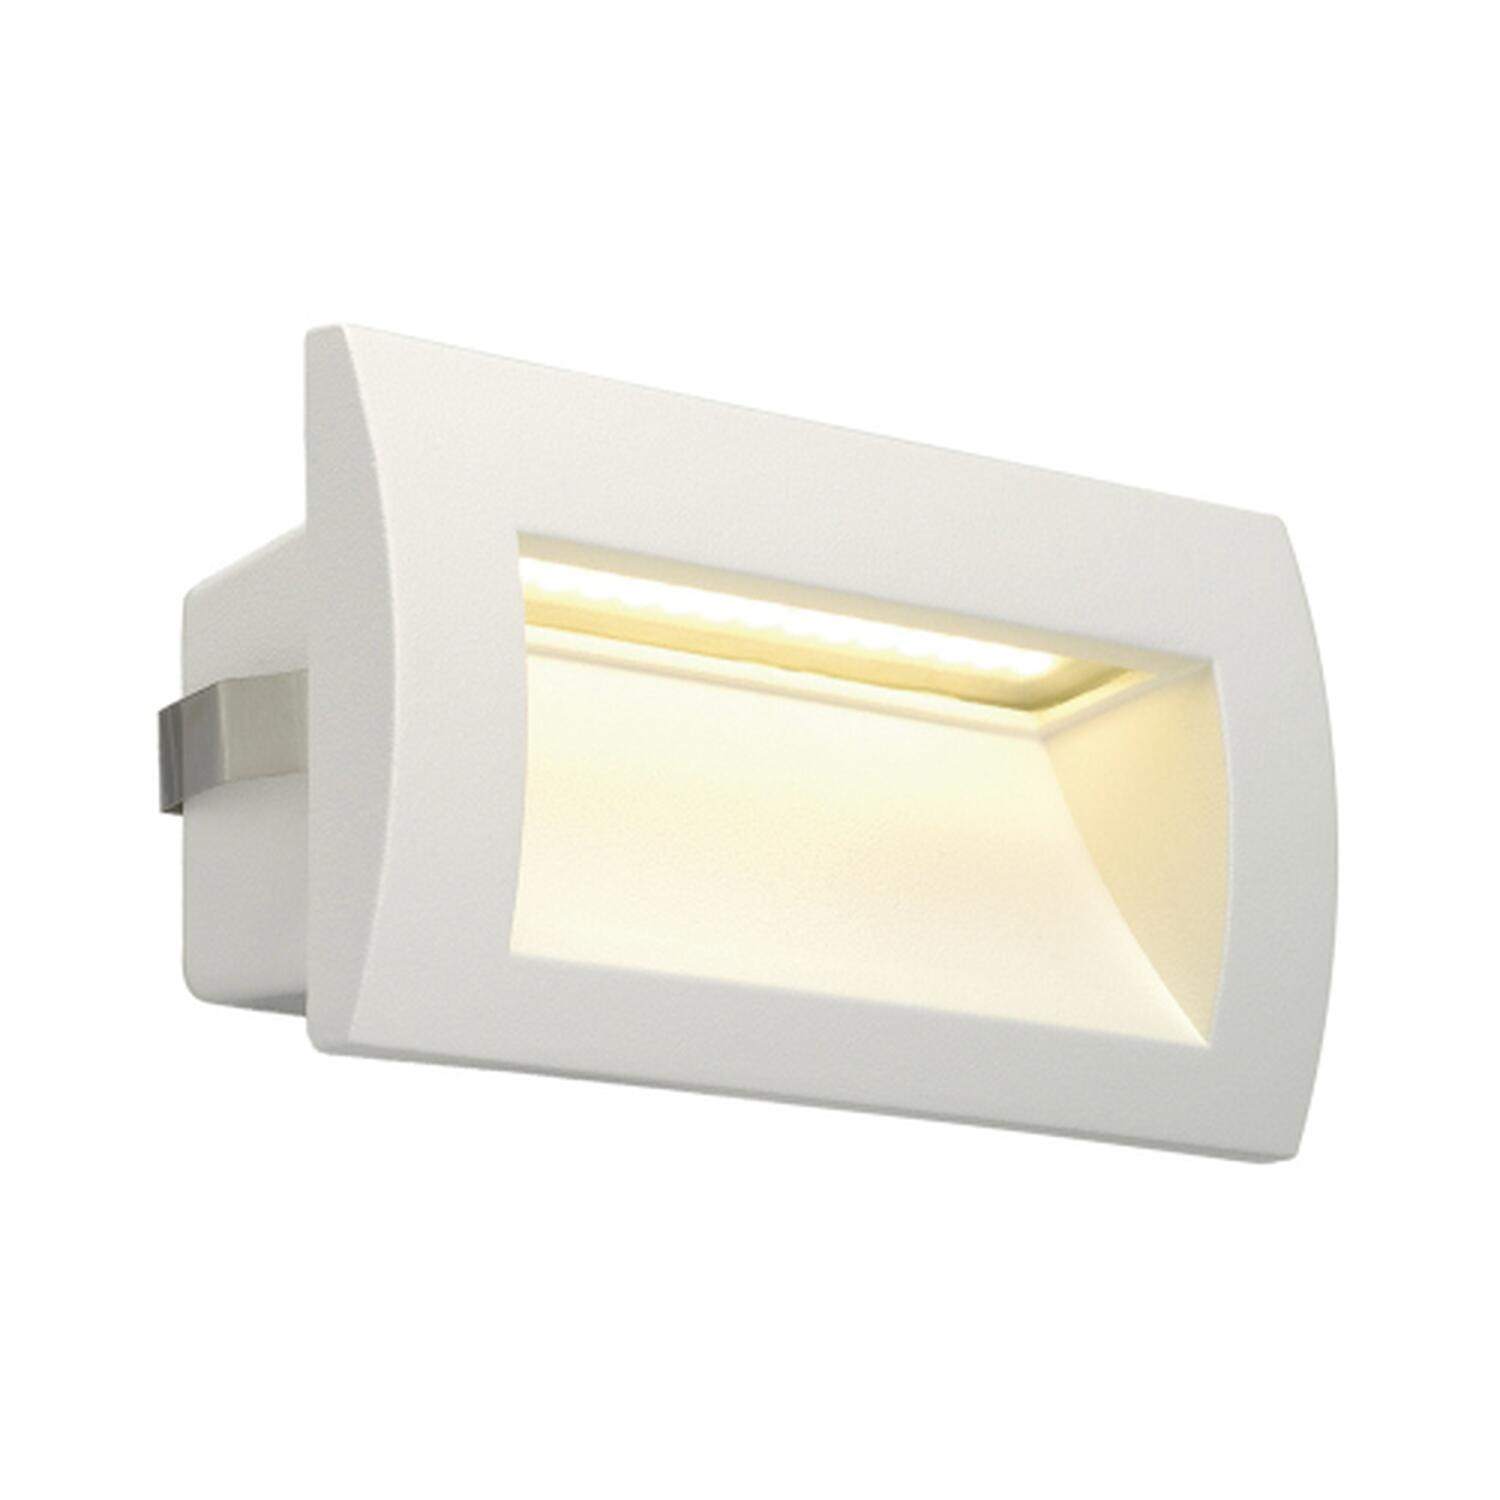 DOWNUNDER OUT LED M, Wandeinbauleuchte, weiss